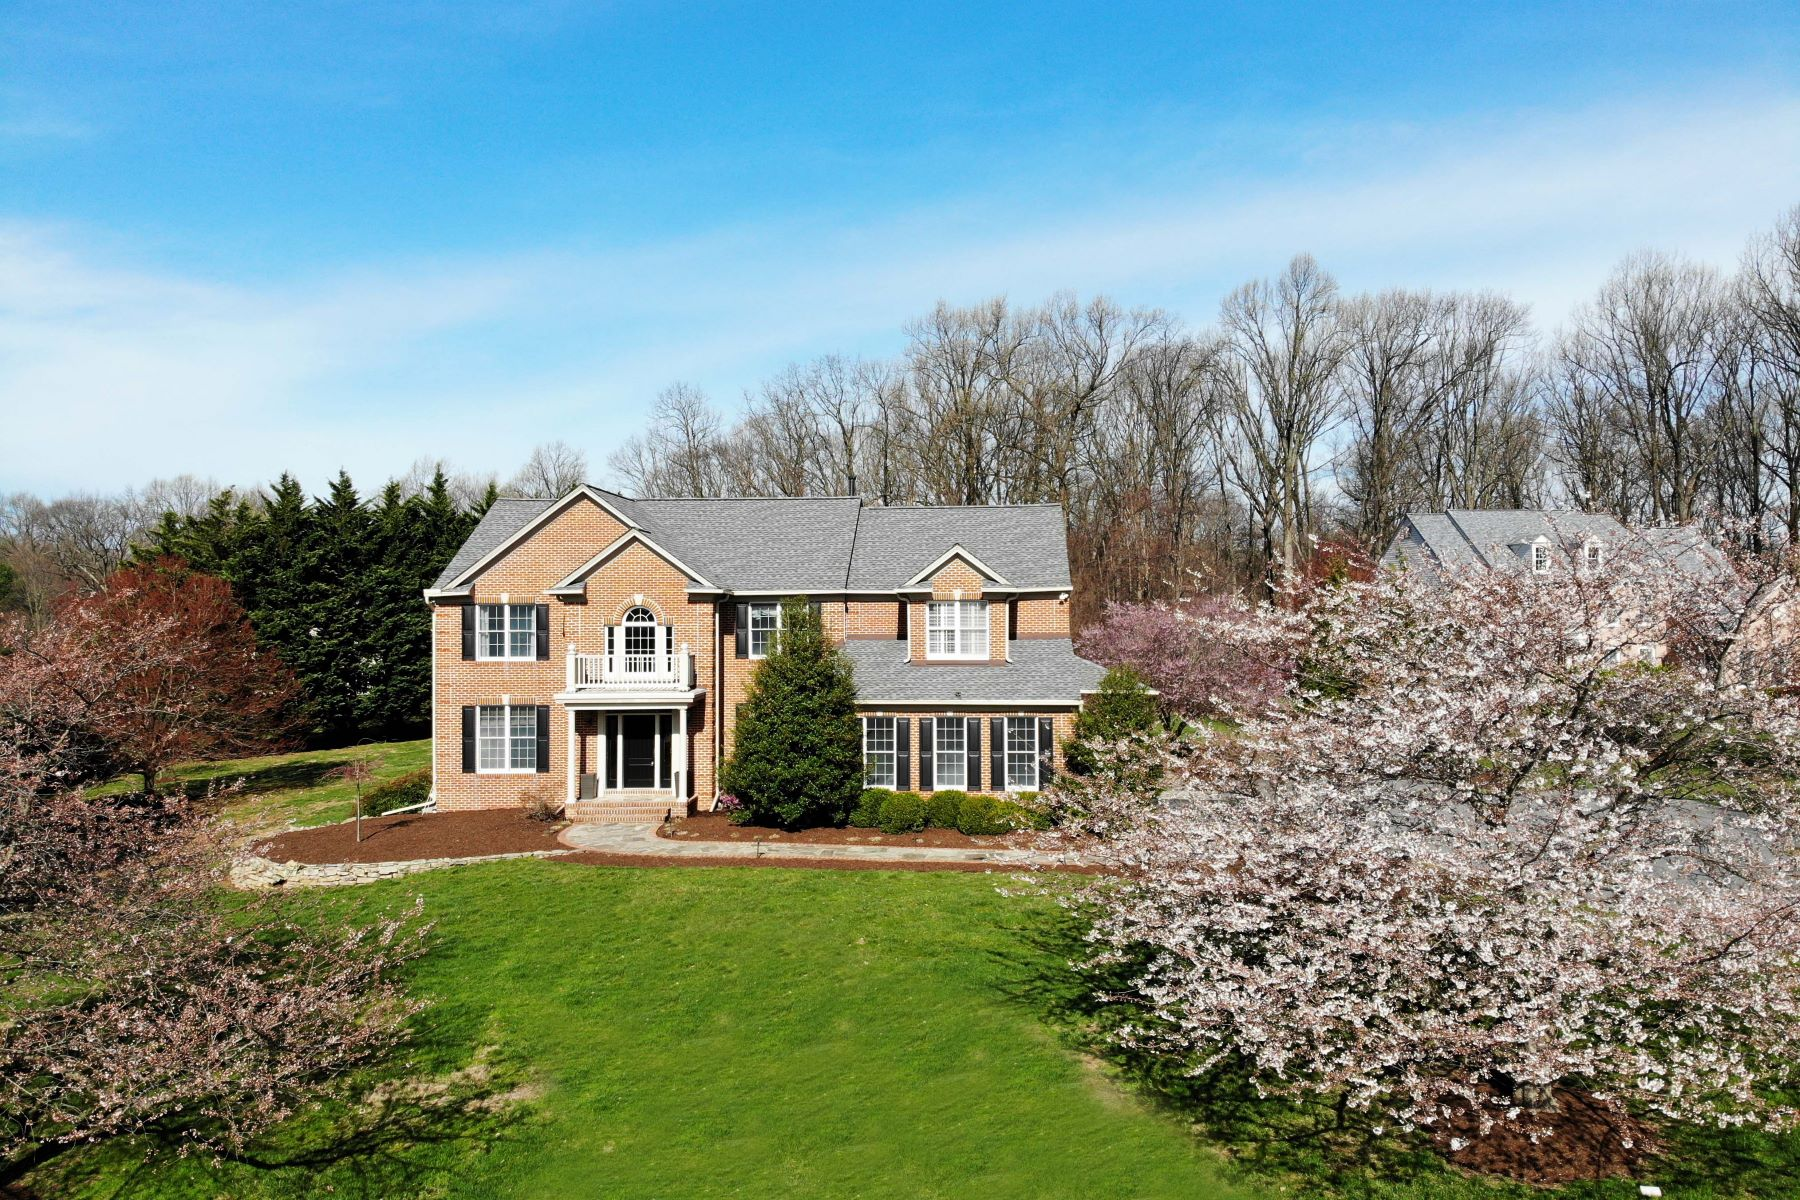 Single Family Homes for Sale at Shaneybrook Farms 4 Quail Covey Court Reisterstown, Maryland 21136 United States